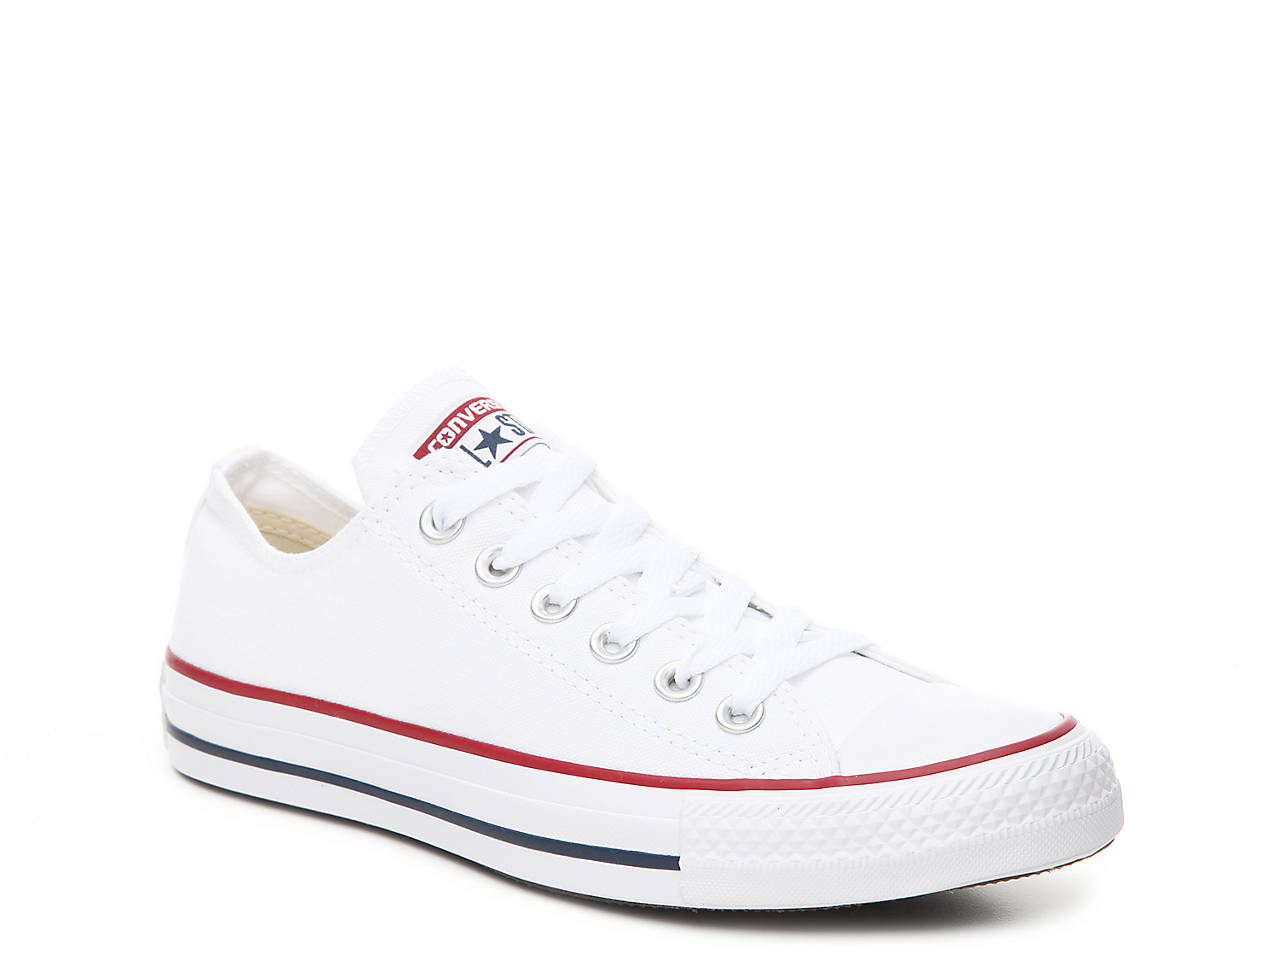 Best Converse Blue Red Yellow Online Outlet Sale lrf9tyeln